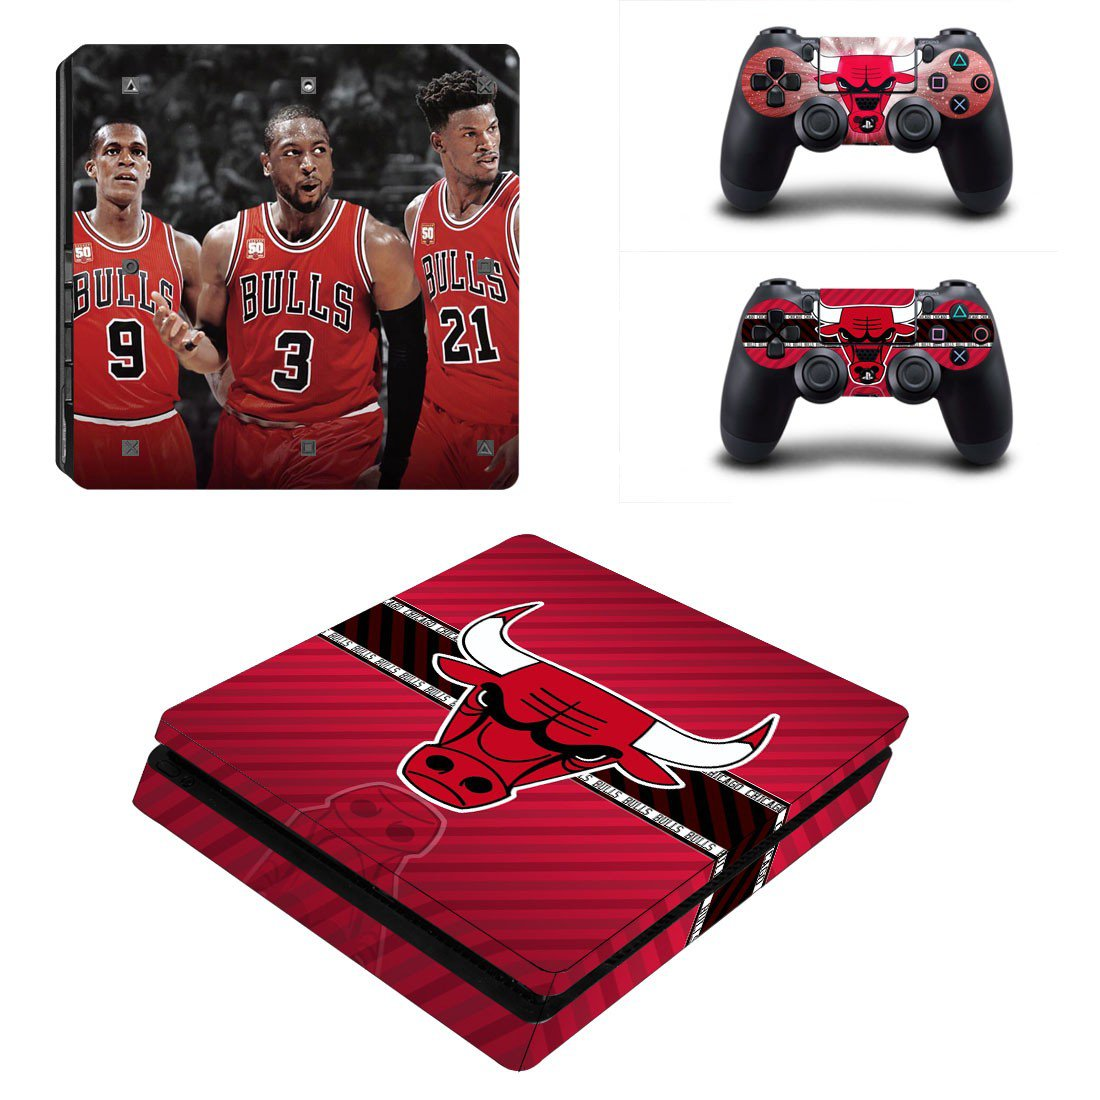 Buffalo Bills Play Station 4 slim skin decal for console and 2 controllers